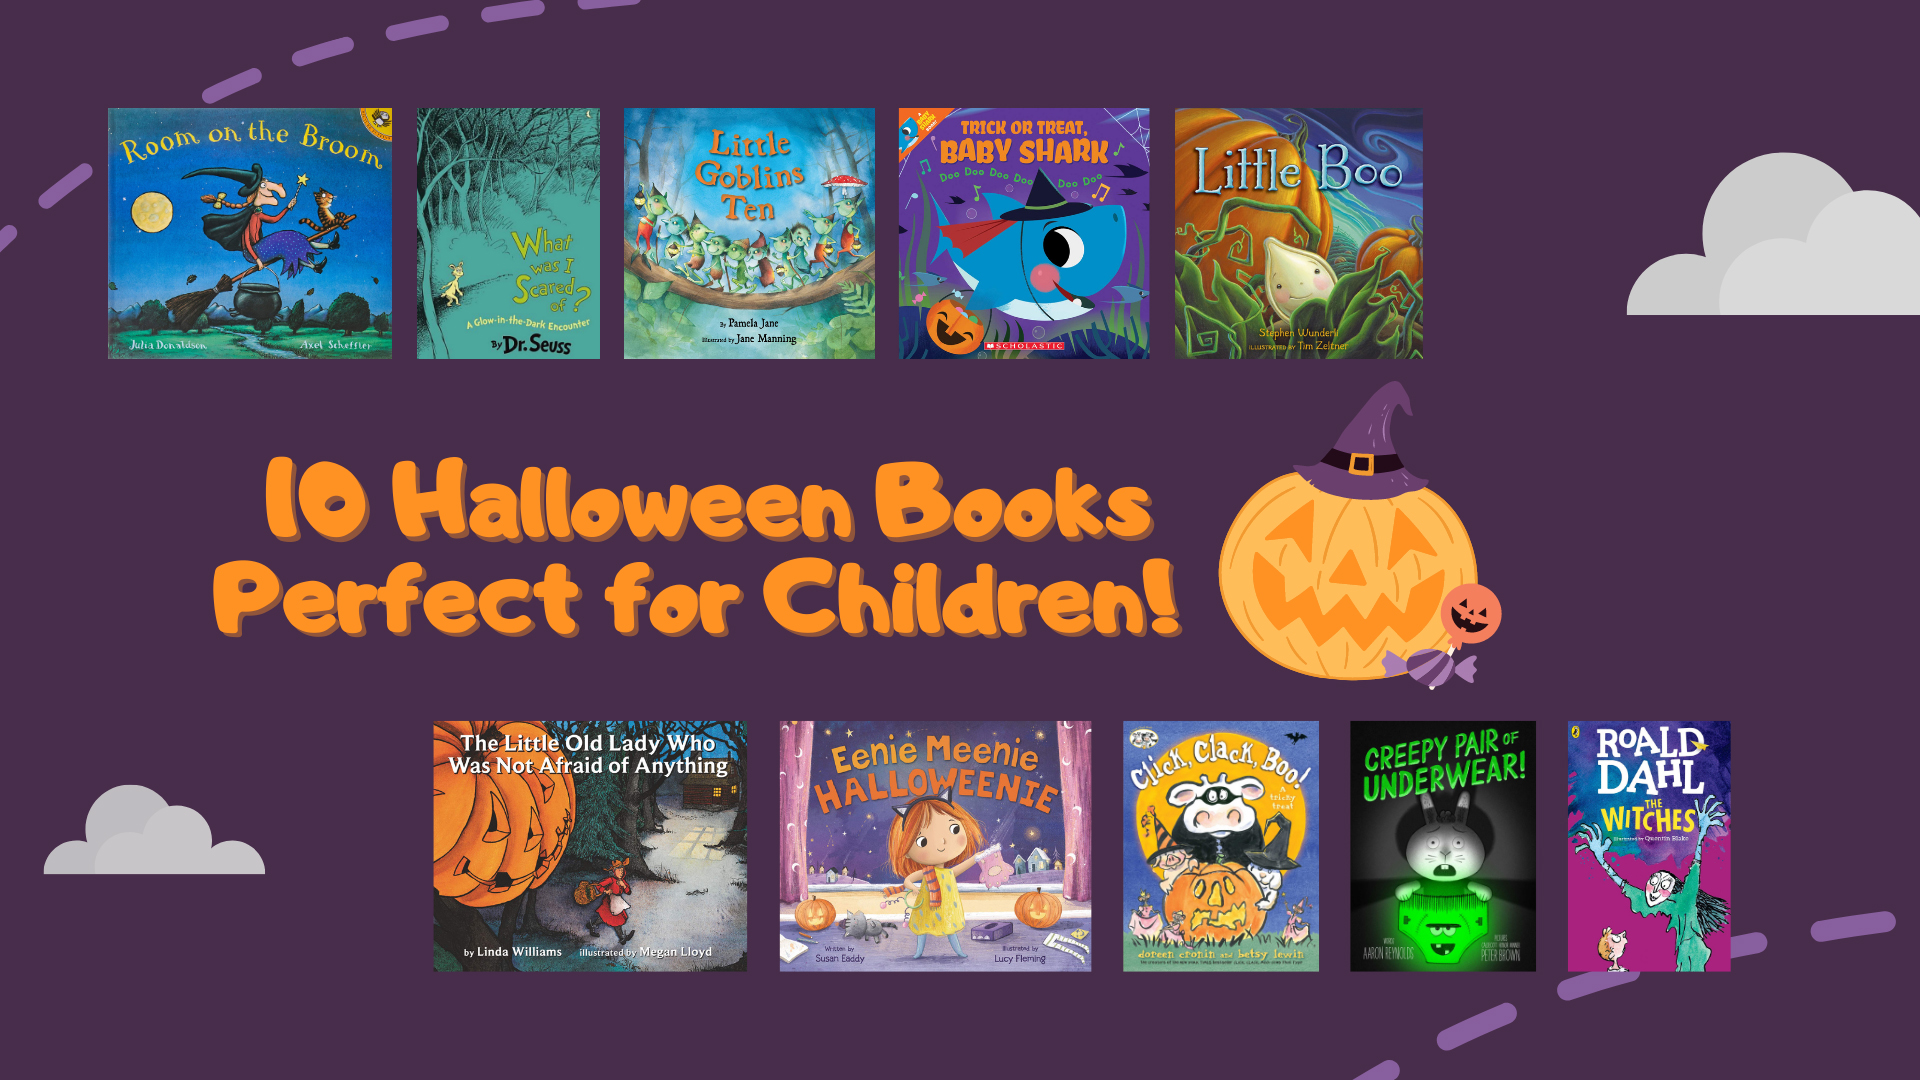 10 Halloween Books Perfect for Children